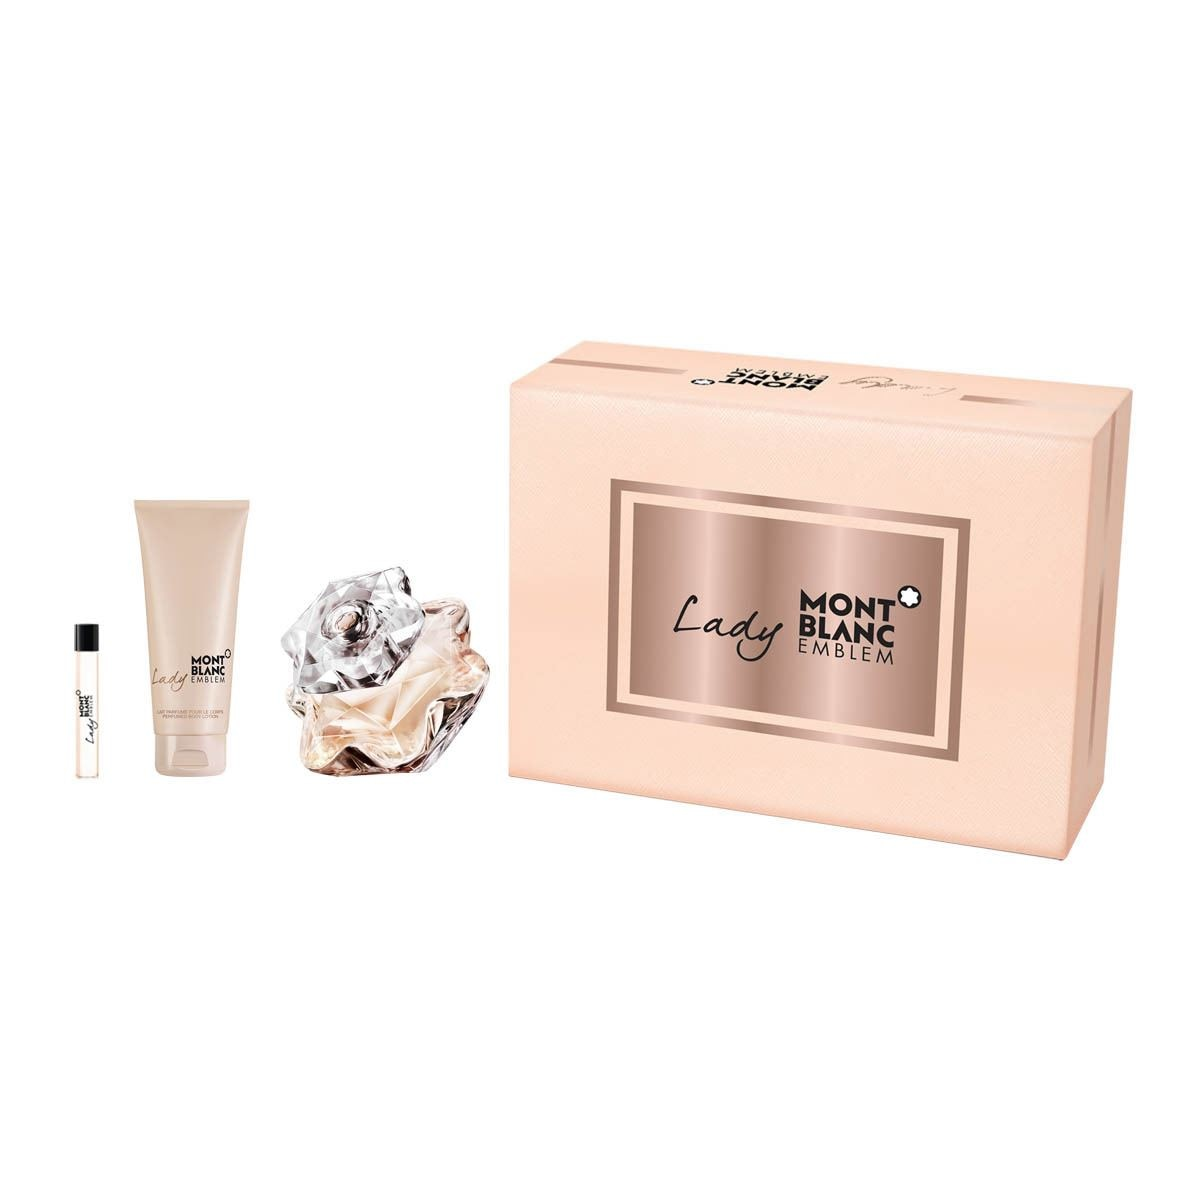 Mont blanc set lady emblem edp 75 ml + rb 7.5 ml + bl 100 ml  - Sanborns